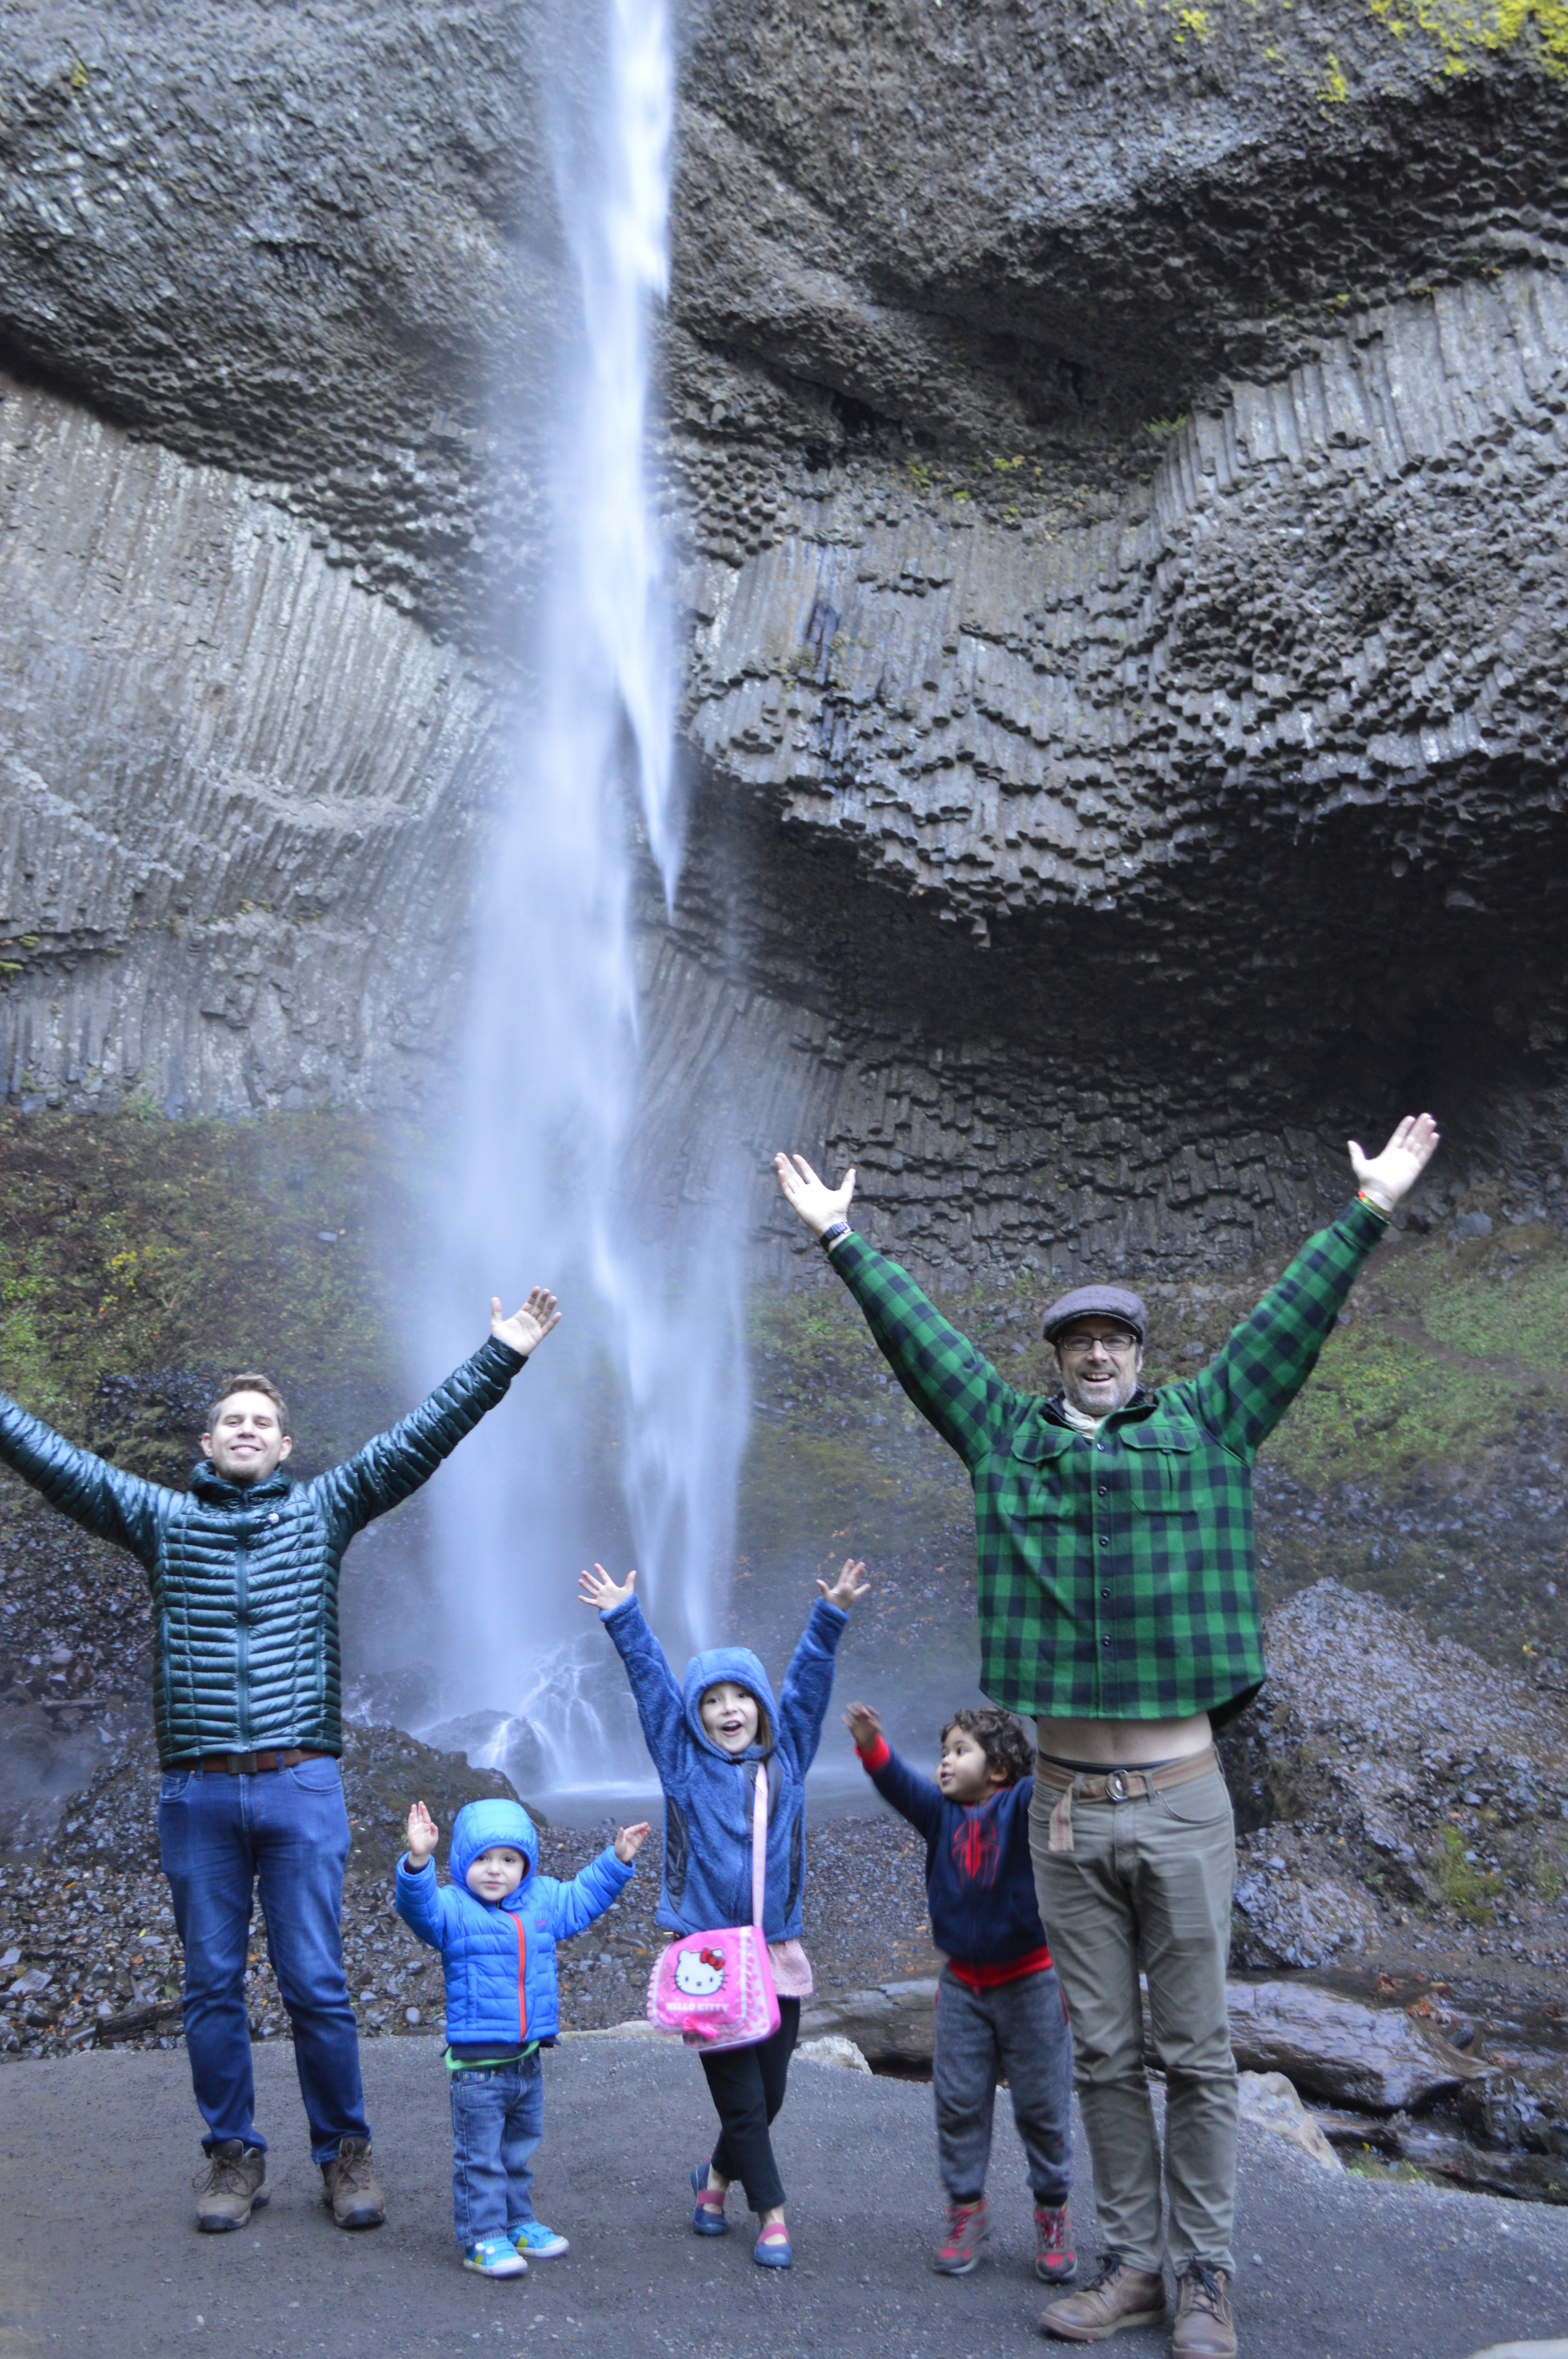 Columbia Gorge Waterfall Hike Tour (Van Only)